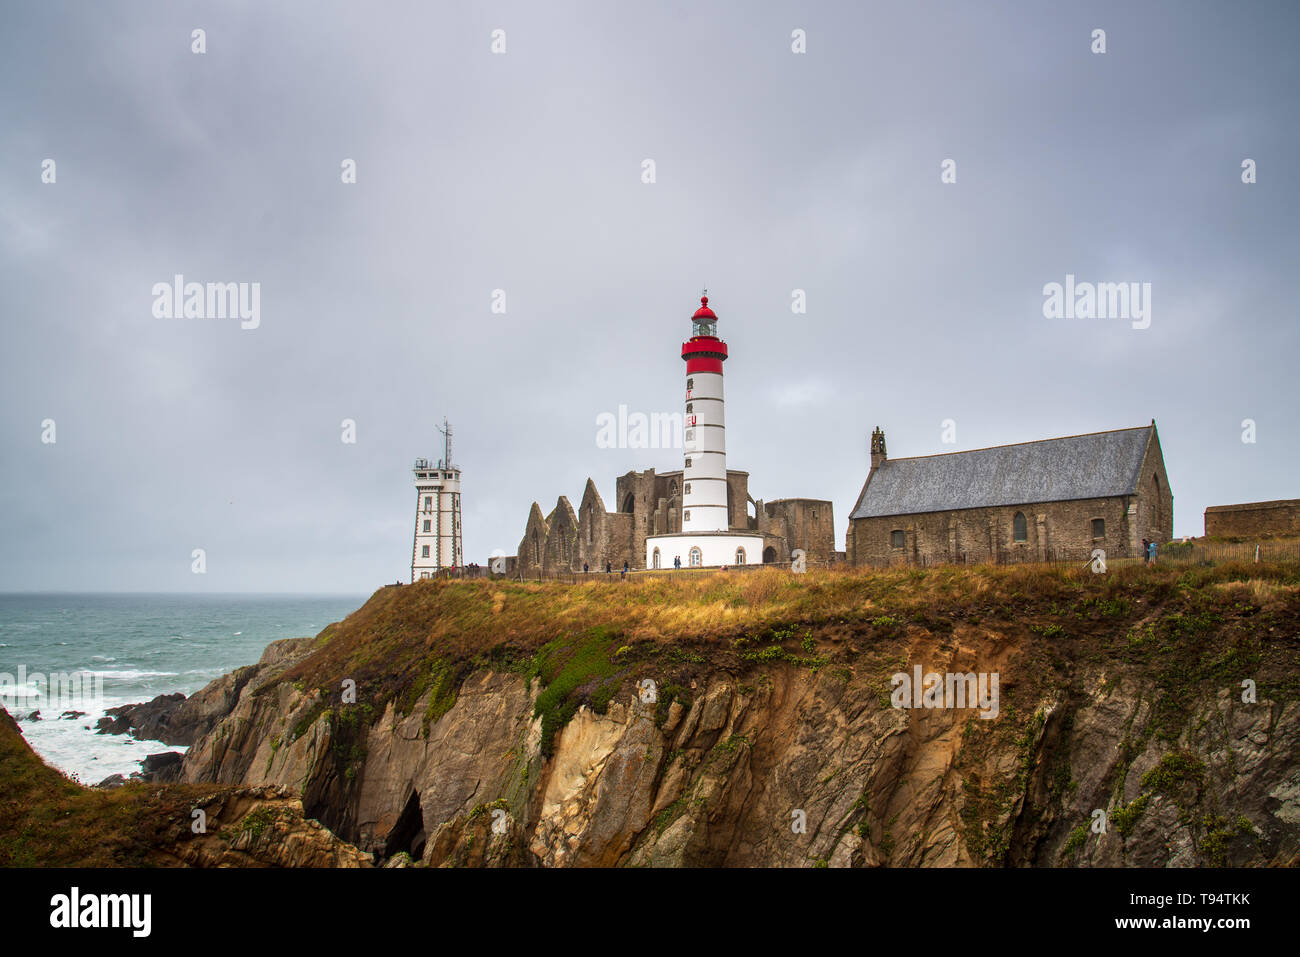 Plougonvelin, France - July 29, 2018: Pointe Saint Mathieu Lighthouse in Brittany, France. A cloudy day Stock Photo